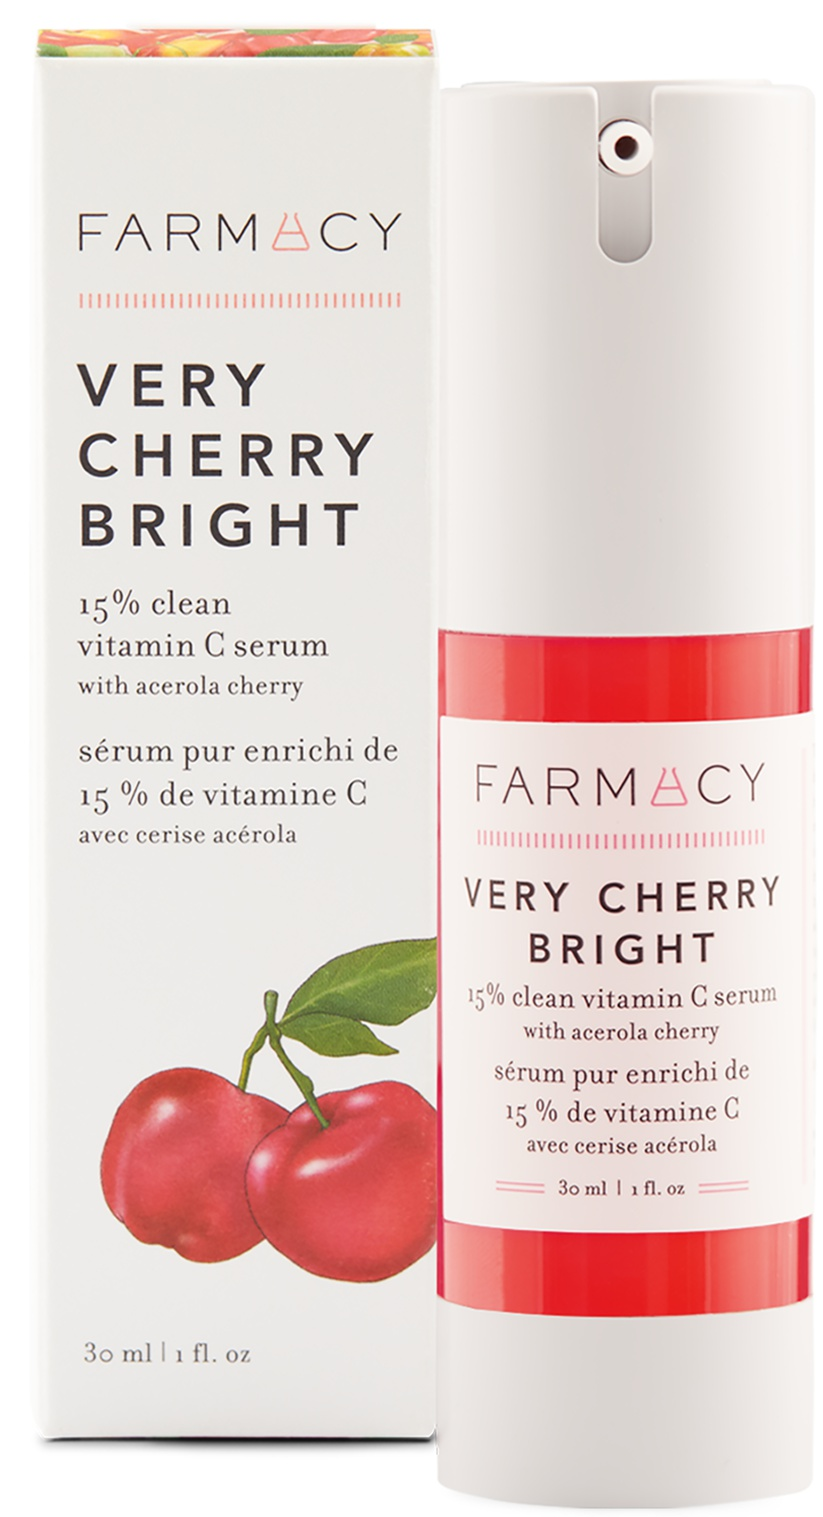 Farmacy Very Cherry Bright 15% Clean Vitamin C Serum With Acerola Cherry